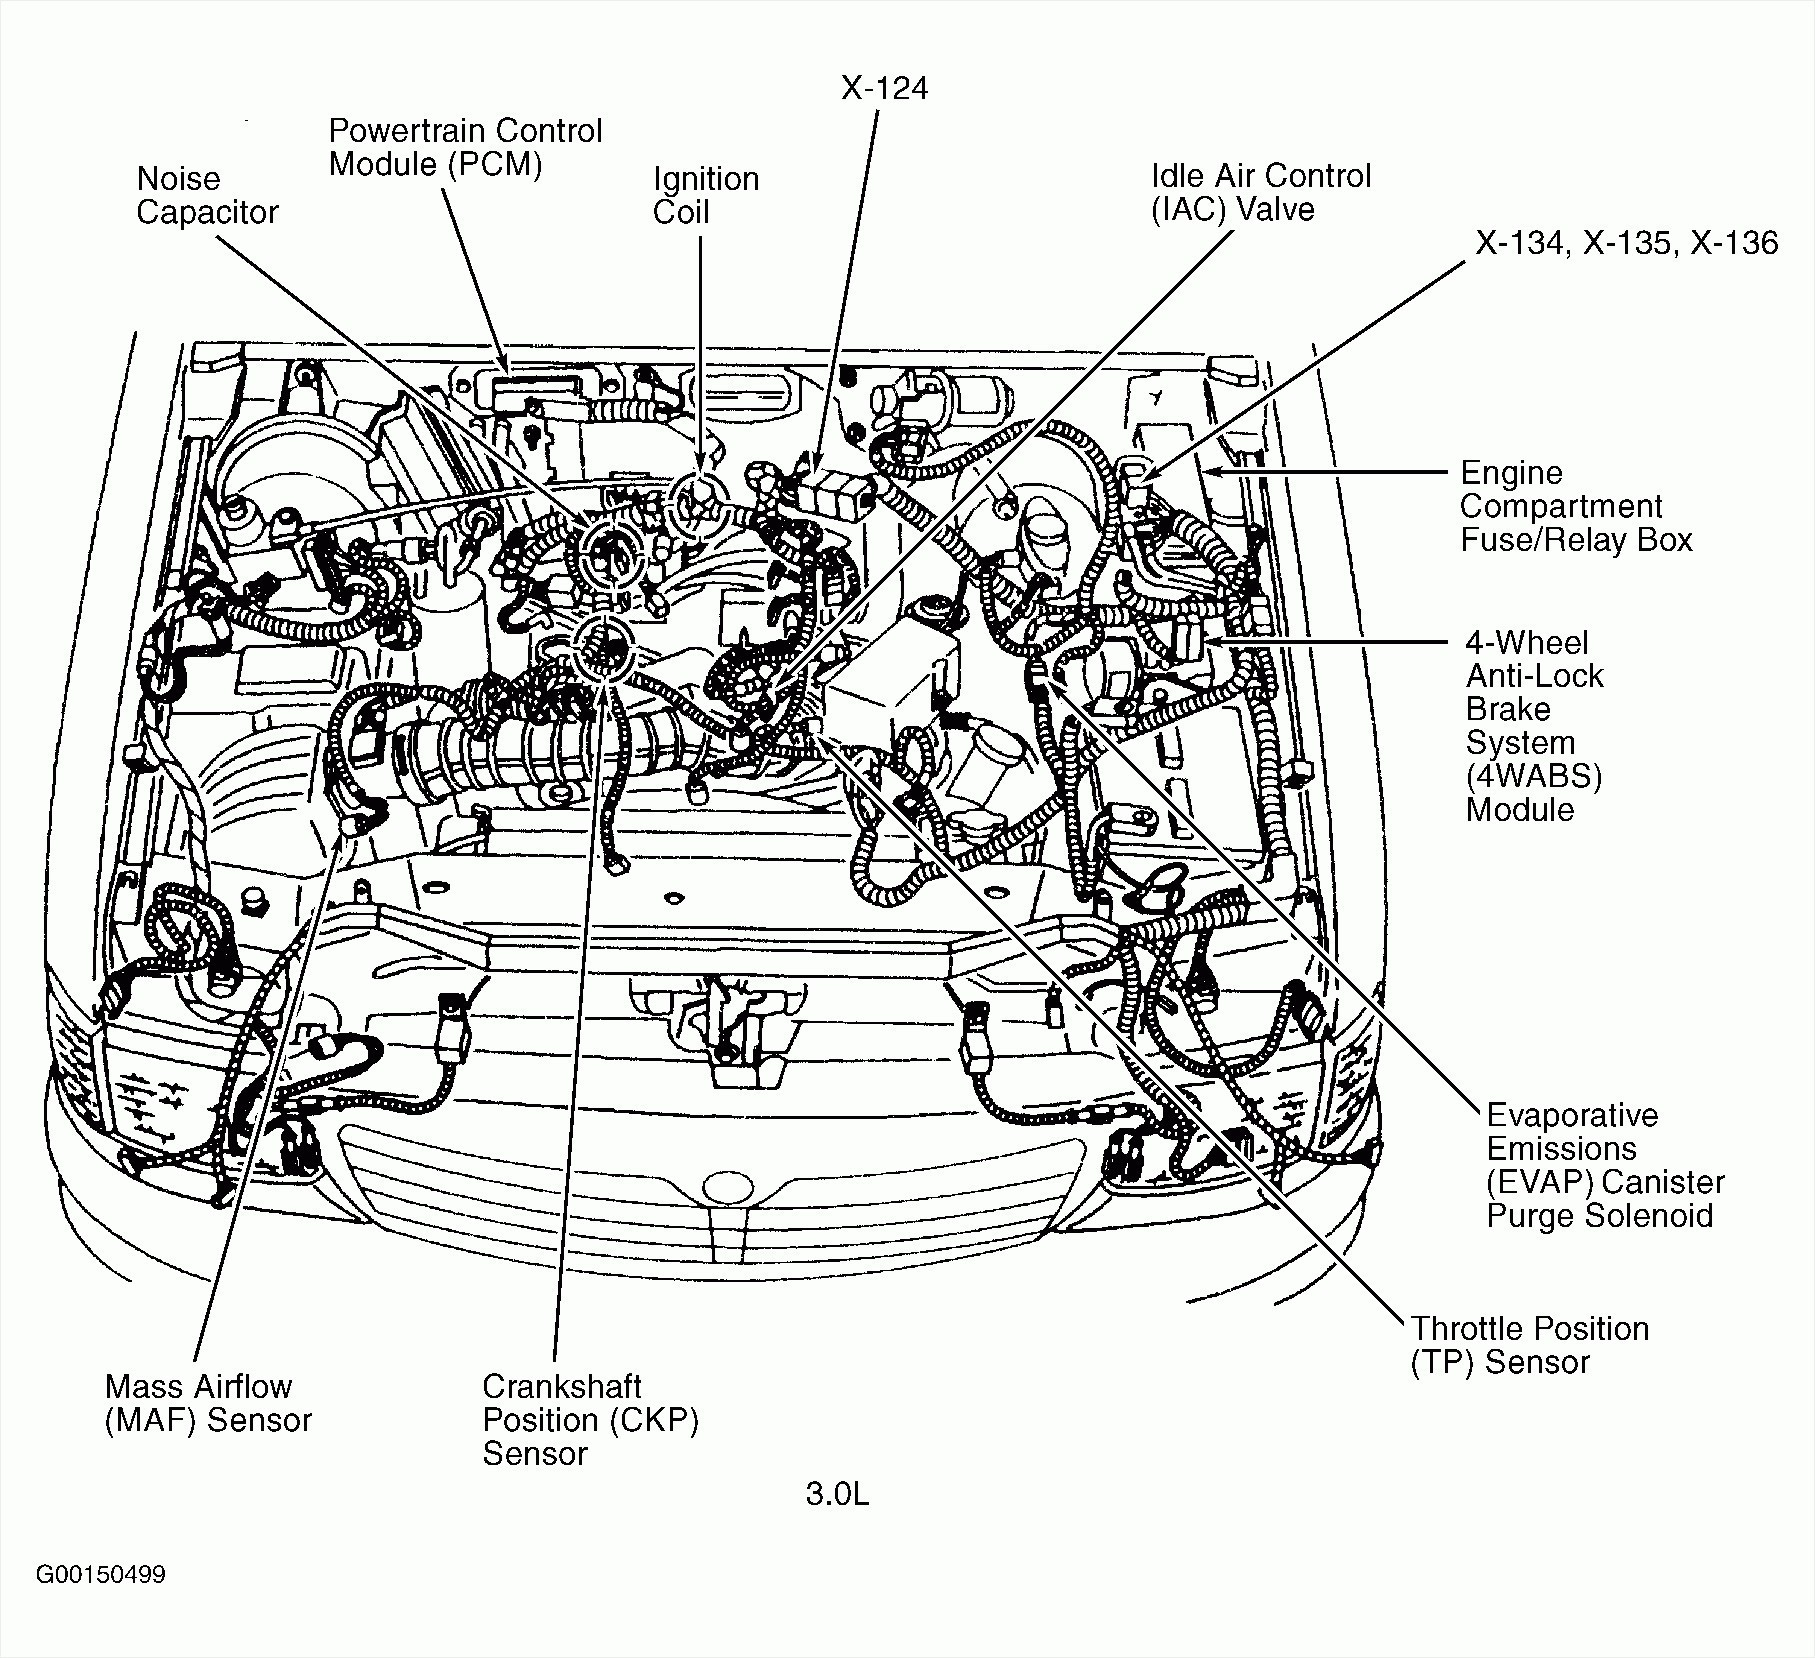 cadillac cts, general motors, block crankshaft bad plate, repairing cadillac, alternator location, high compression pistons for, head gasket, aftermarket motor mount for, on northstar engine schematic diagram location